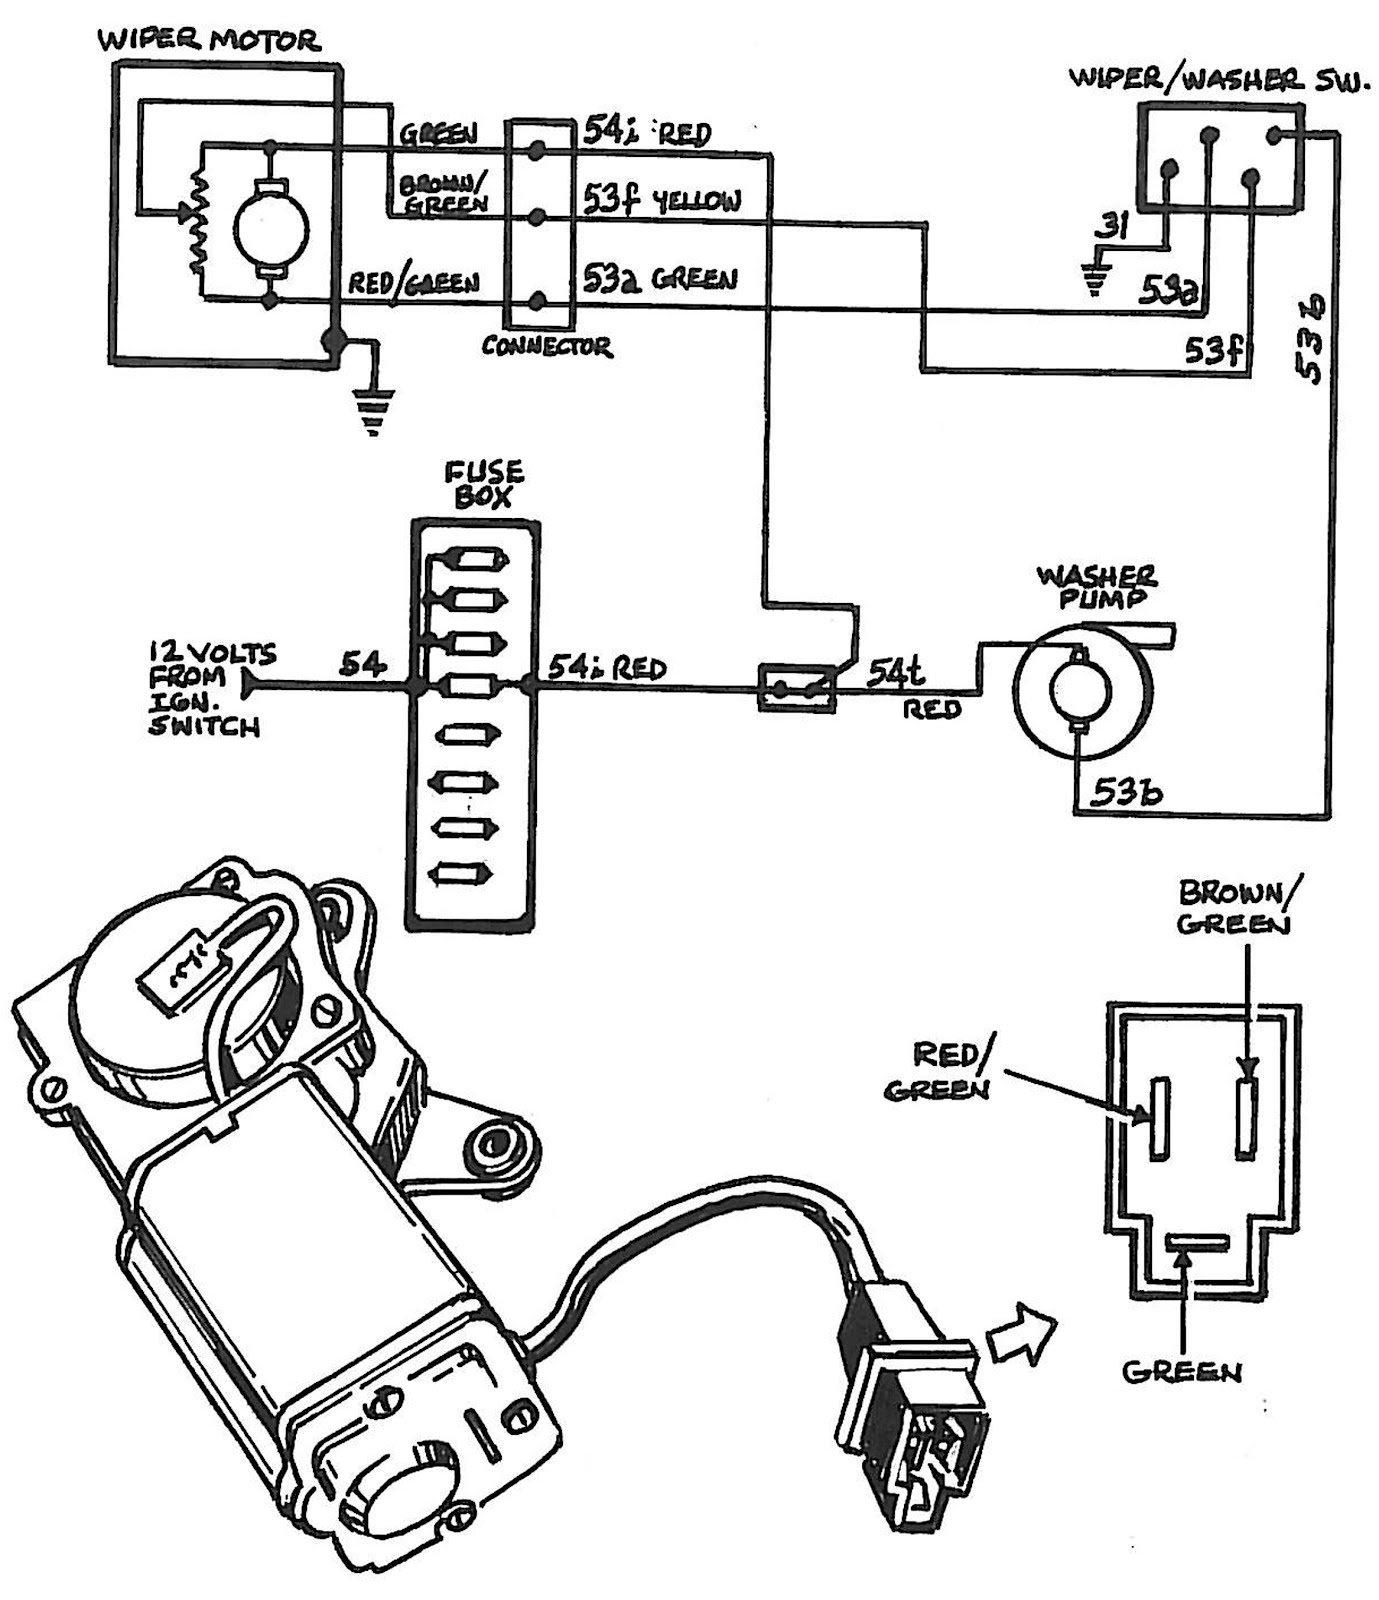 1975 trans am wiring diagram online wiring diagram Club Car Battery Wiring Diagram aveo 2010 fuse box diagram wiring library2011 chevy aveo fuse box best wiring library 2010 chevy